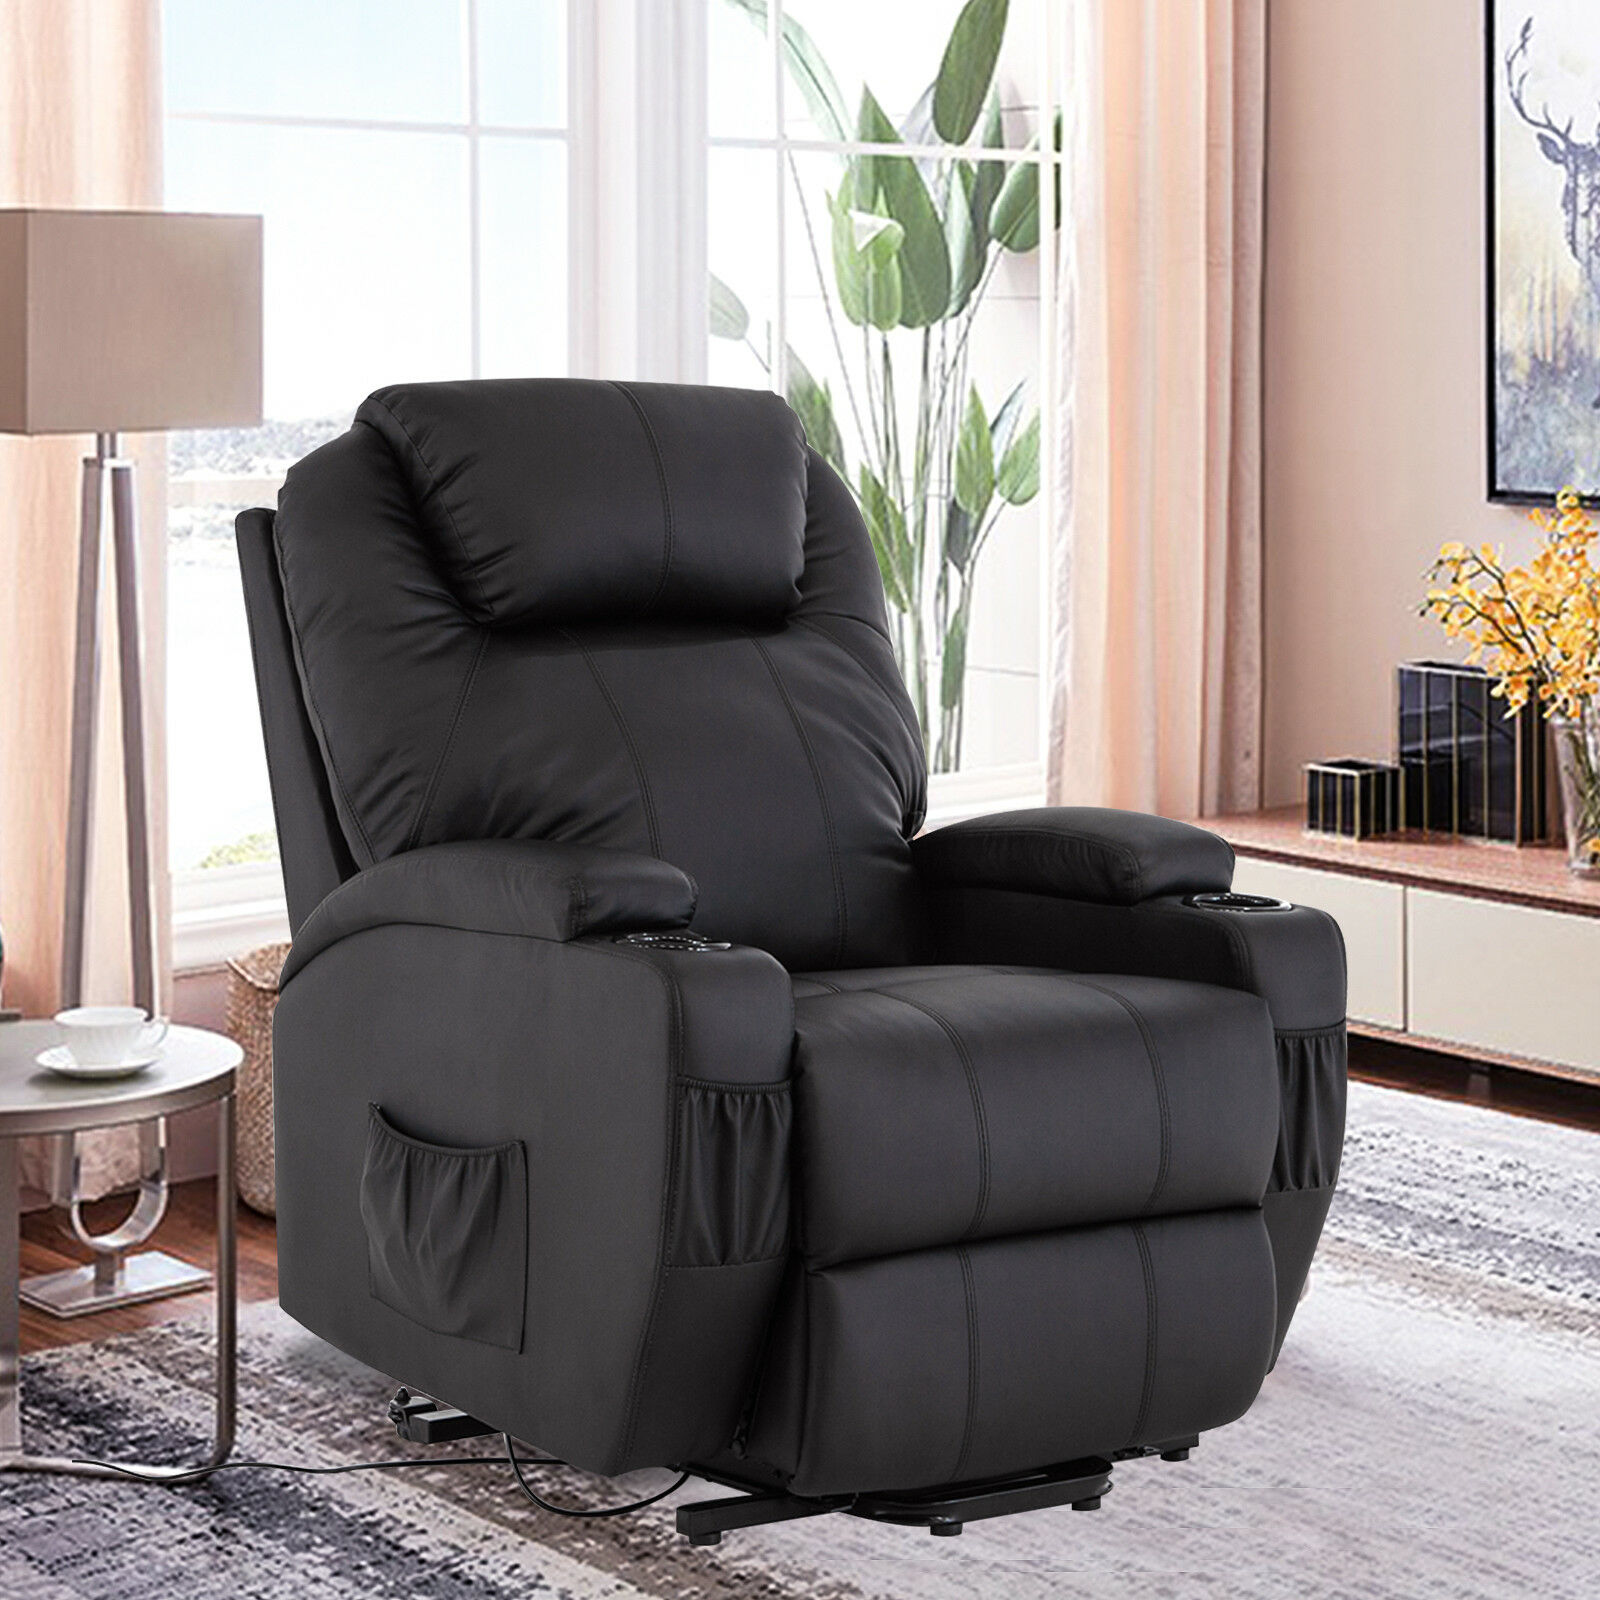 Wall Hugger Lift Chair Power Lift Real Leather Recliner Chair Wall Hugger Lounge Seat Black